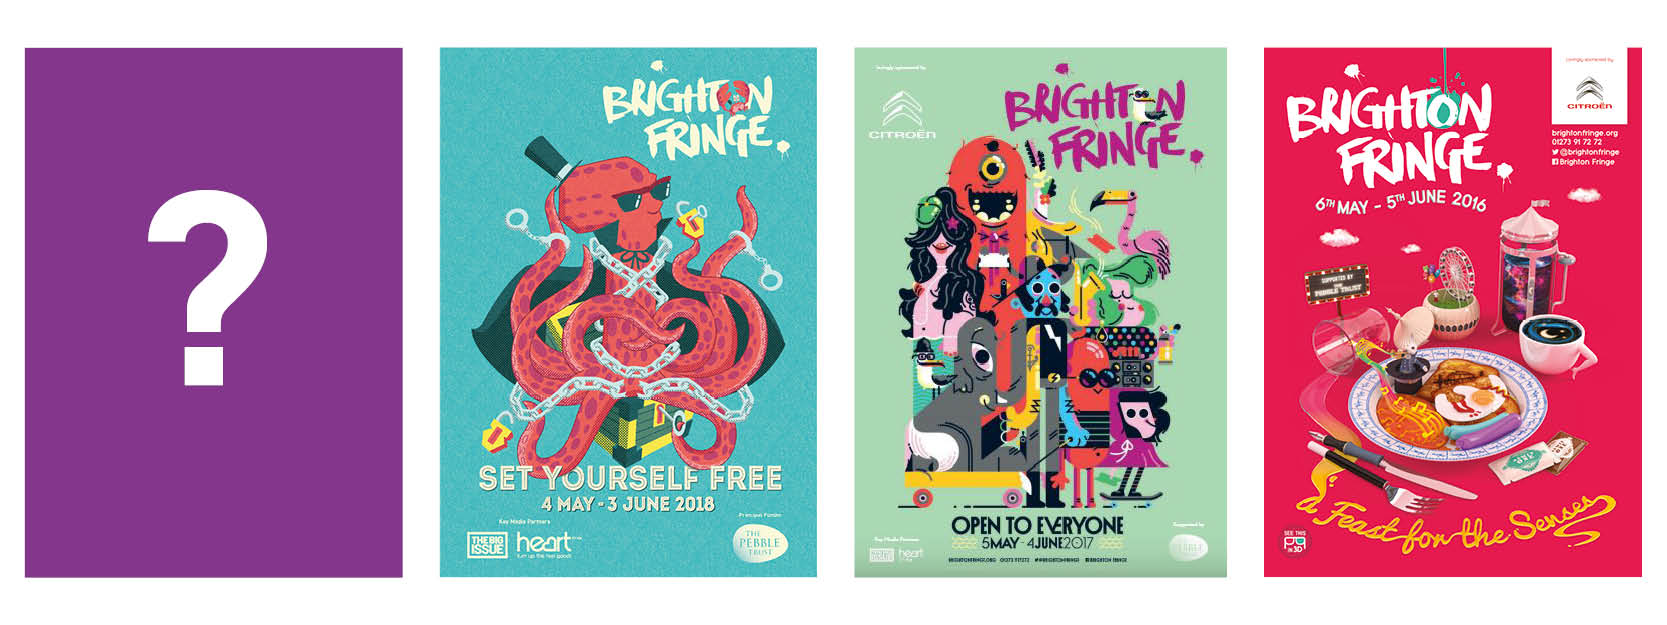 brighton fringe brochure covers